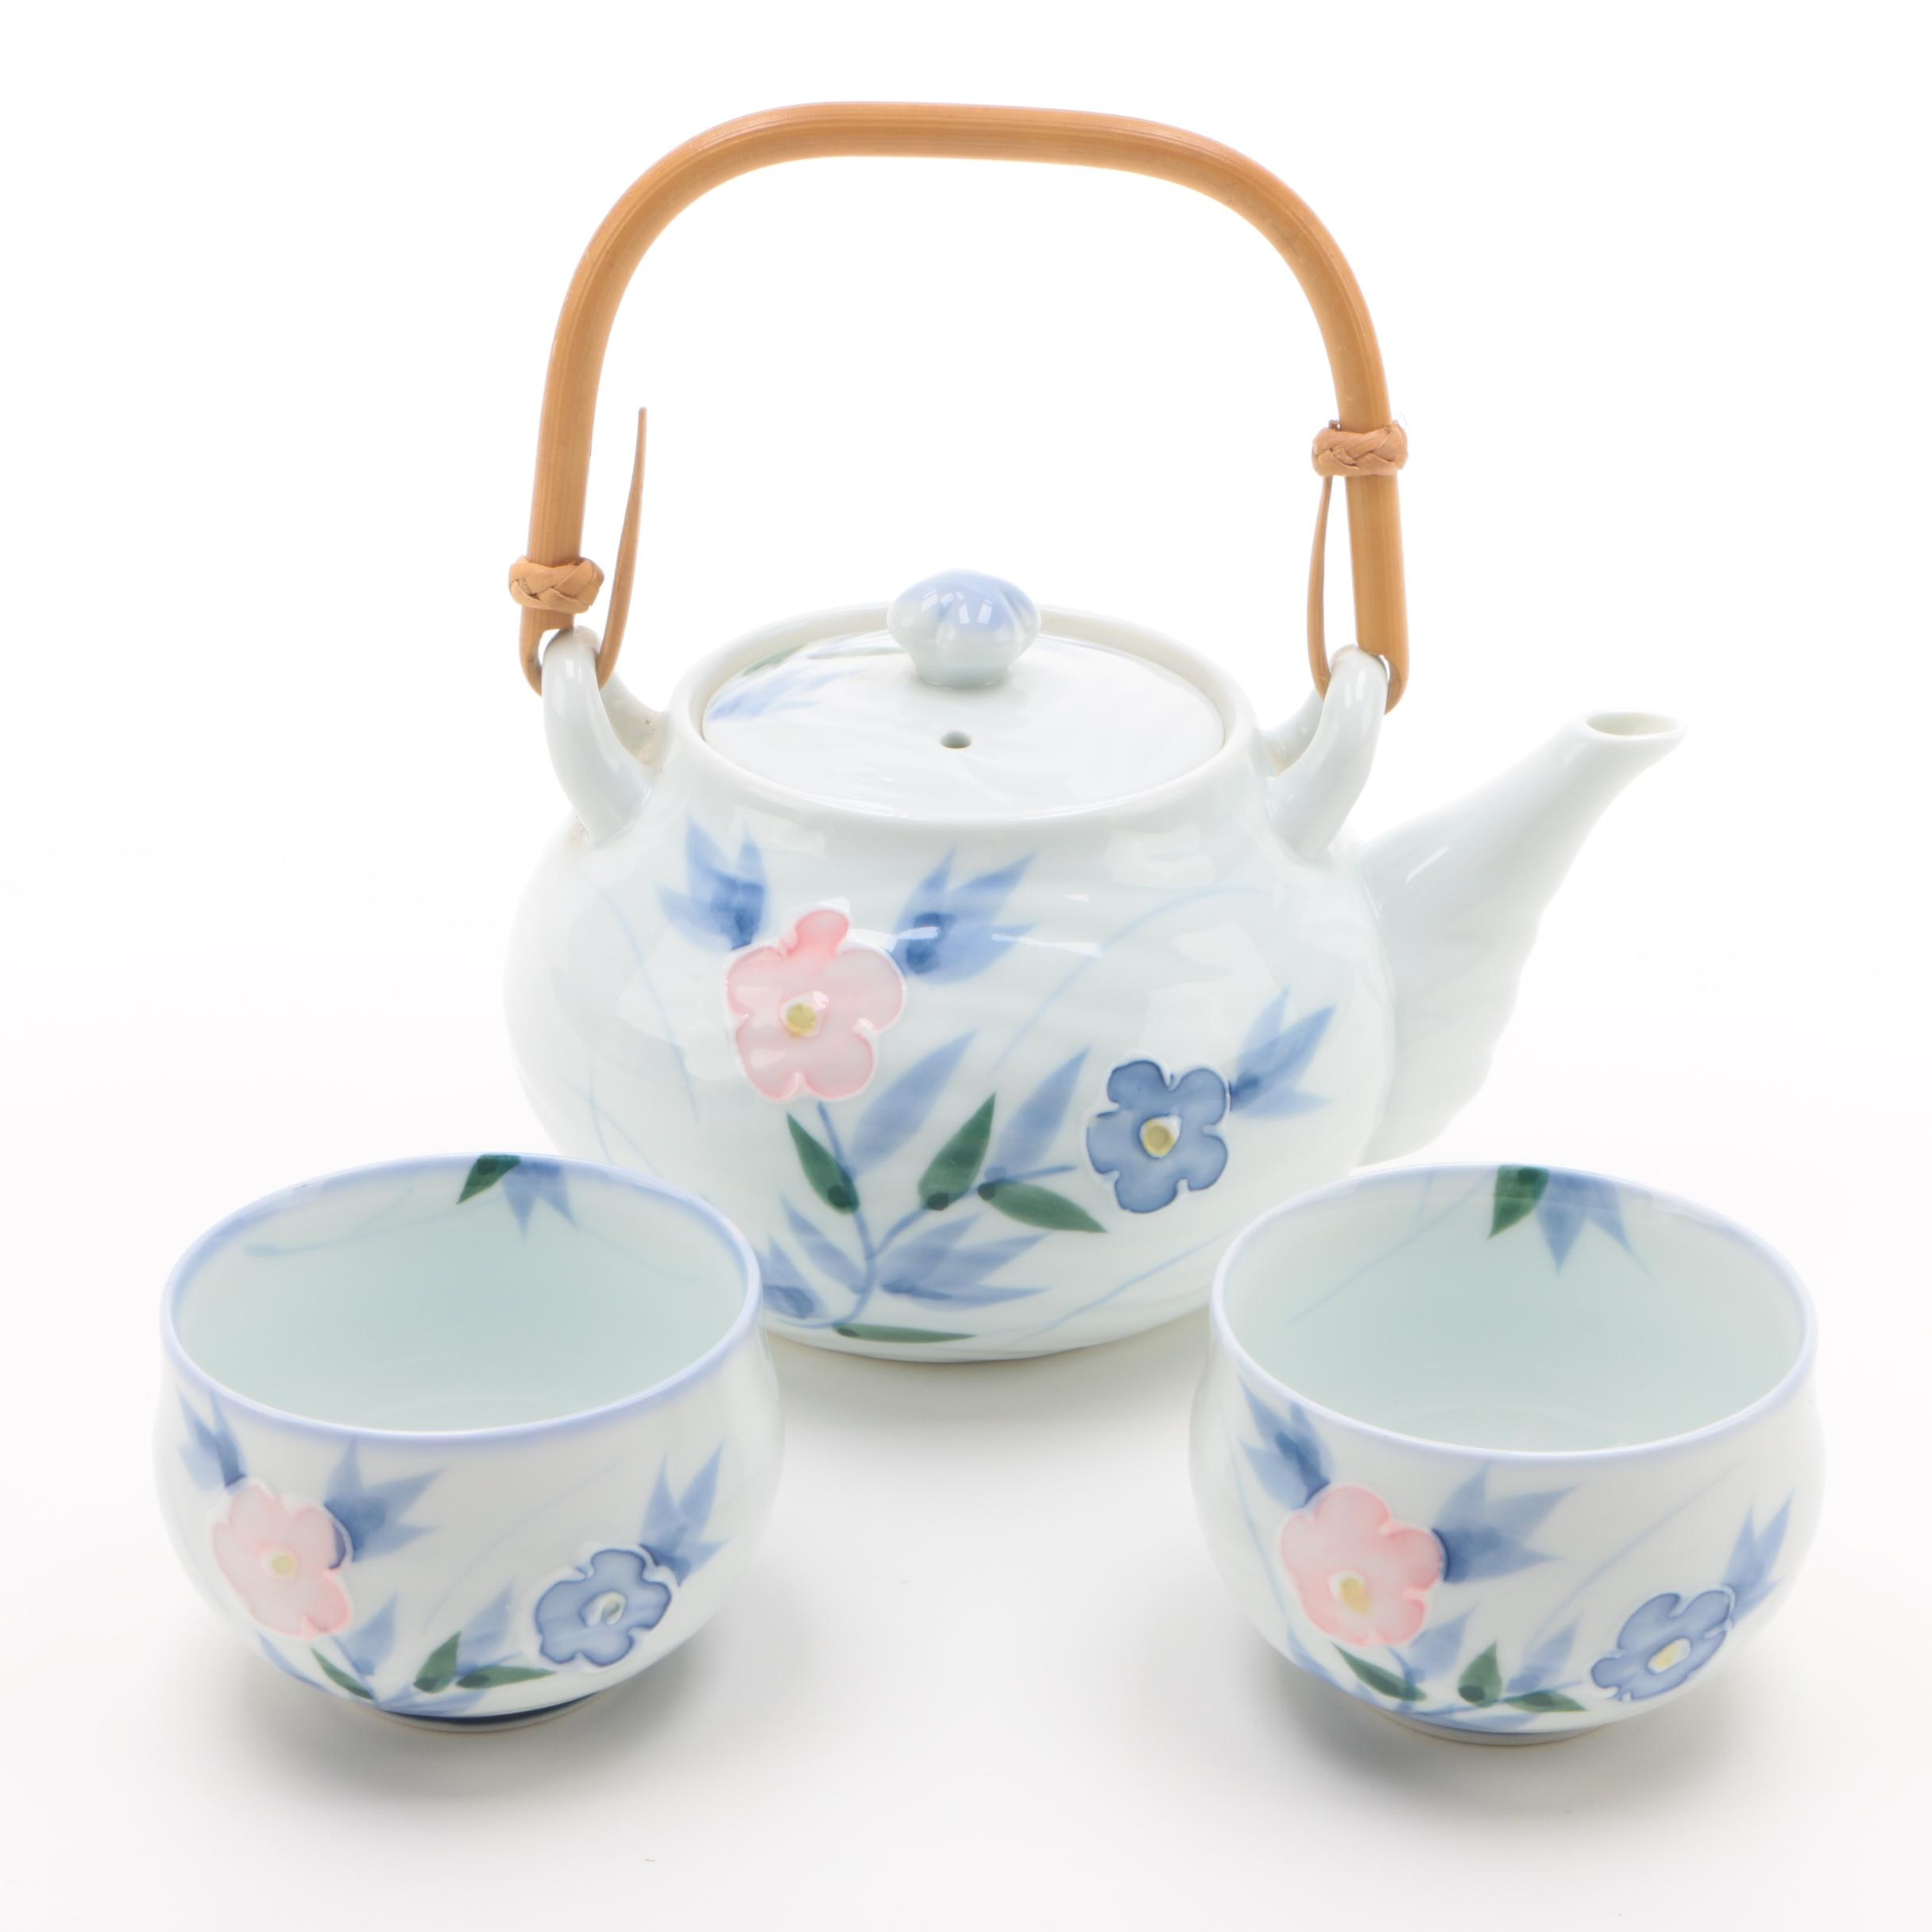 Japanese Floral Motif Porcelain Teapot and Cups